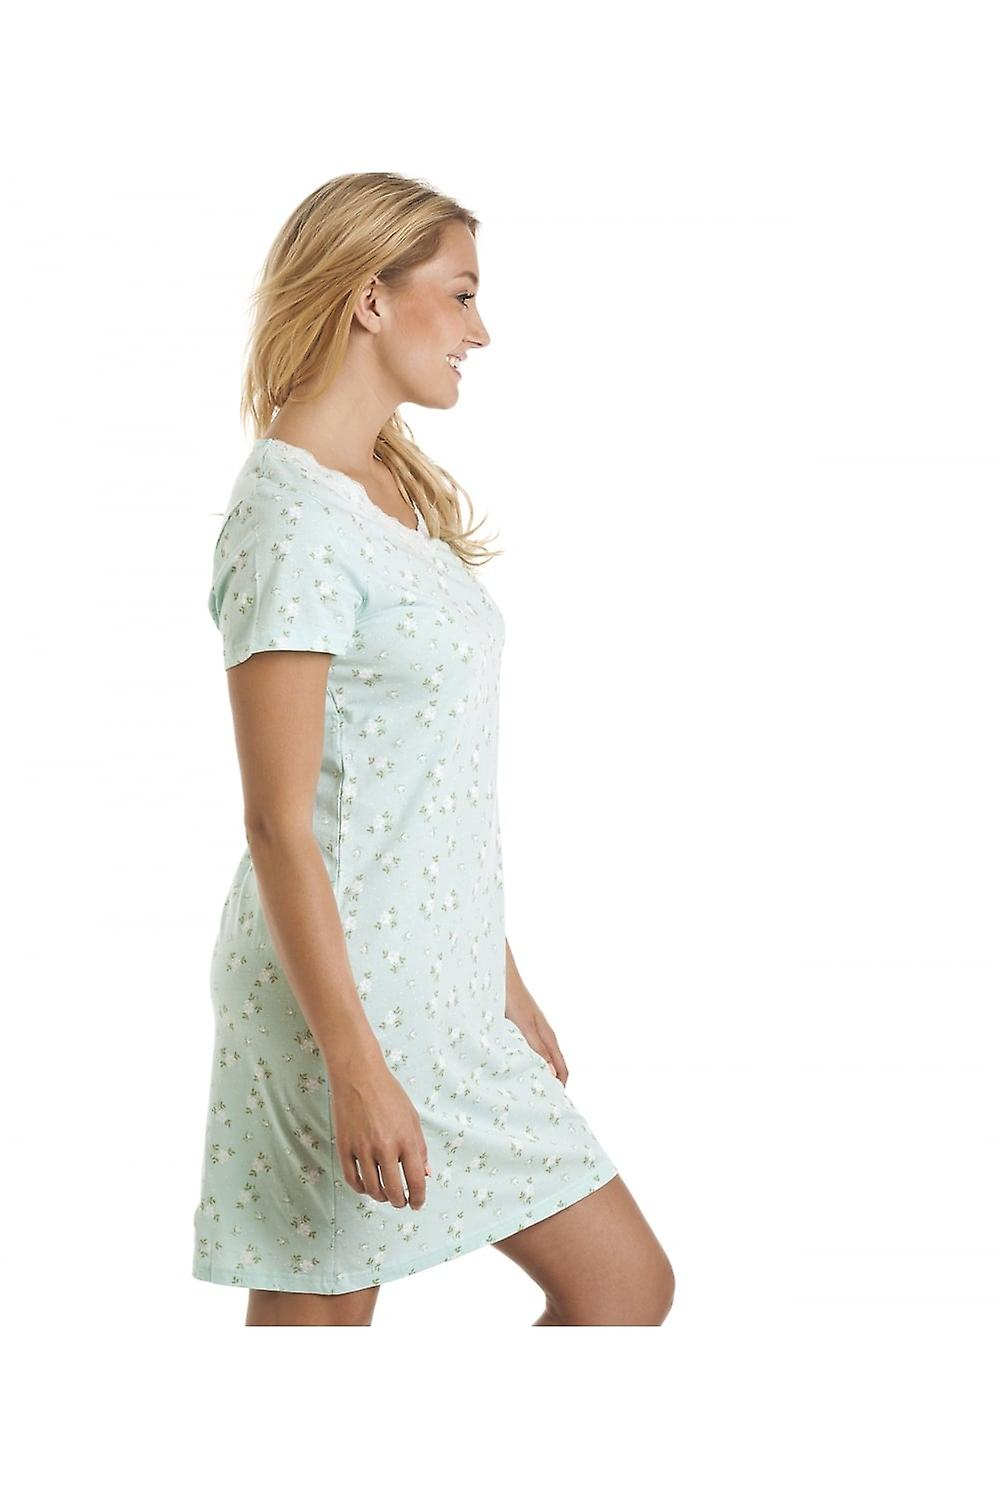 Camille Aqua Blue And White Floral Print Nightdress